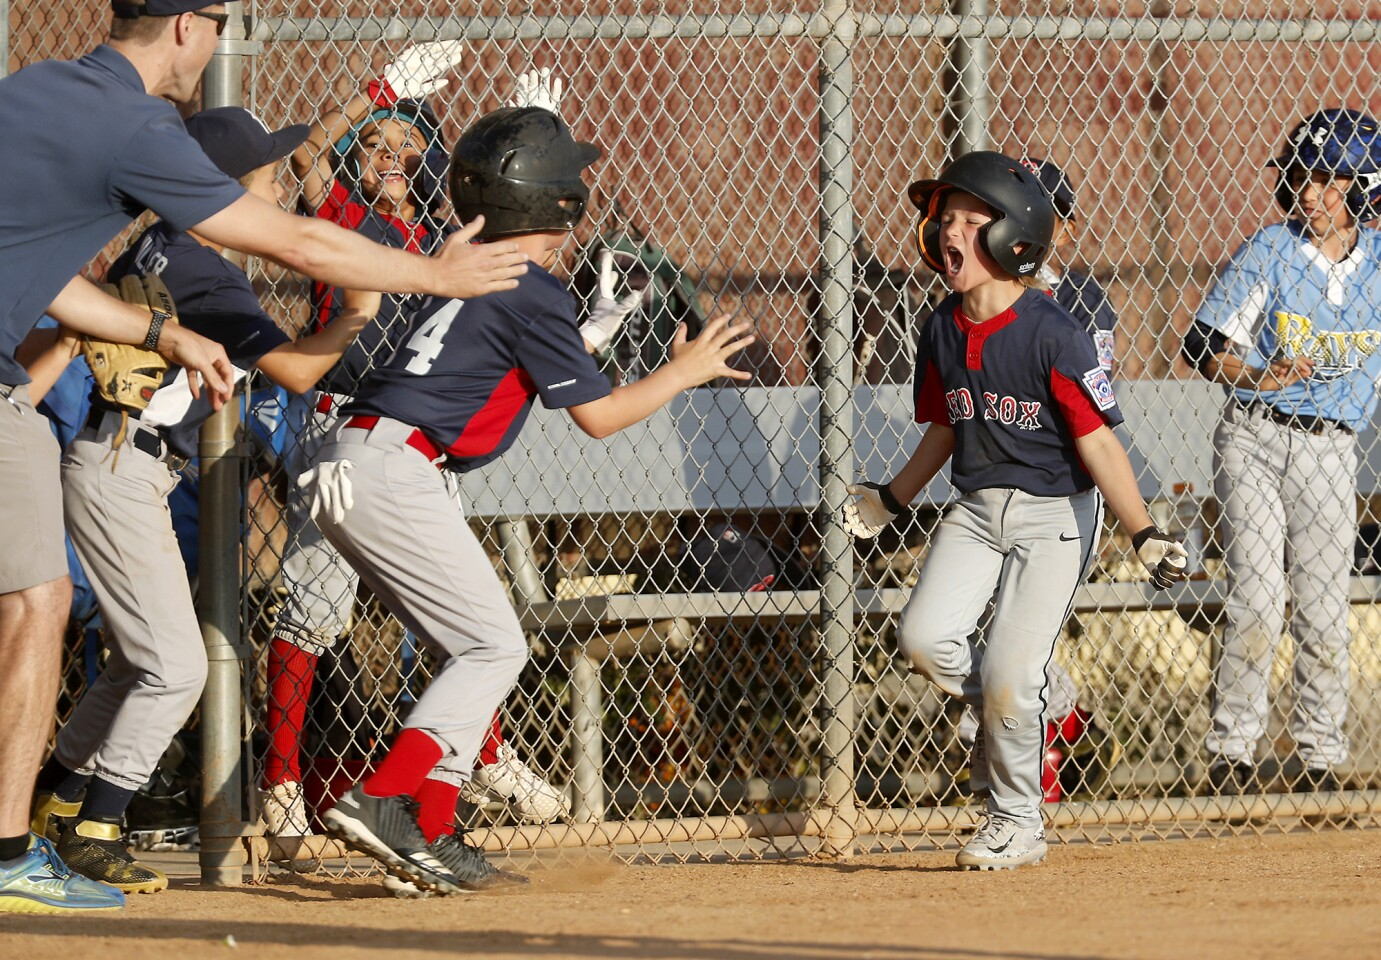 Photo Gallery: Costa Mesa American Little League vs. Costa Mesa National Little League in the District 62 Tournament of Champions Minor B Division